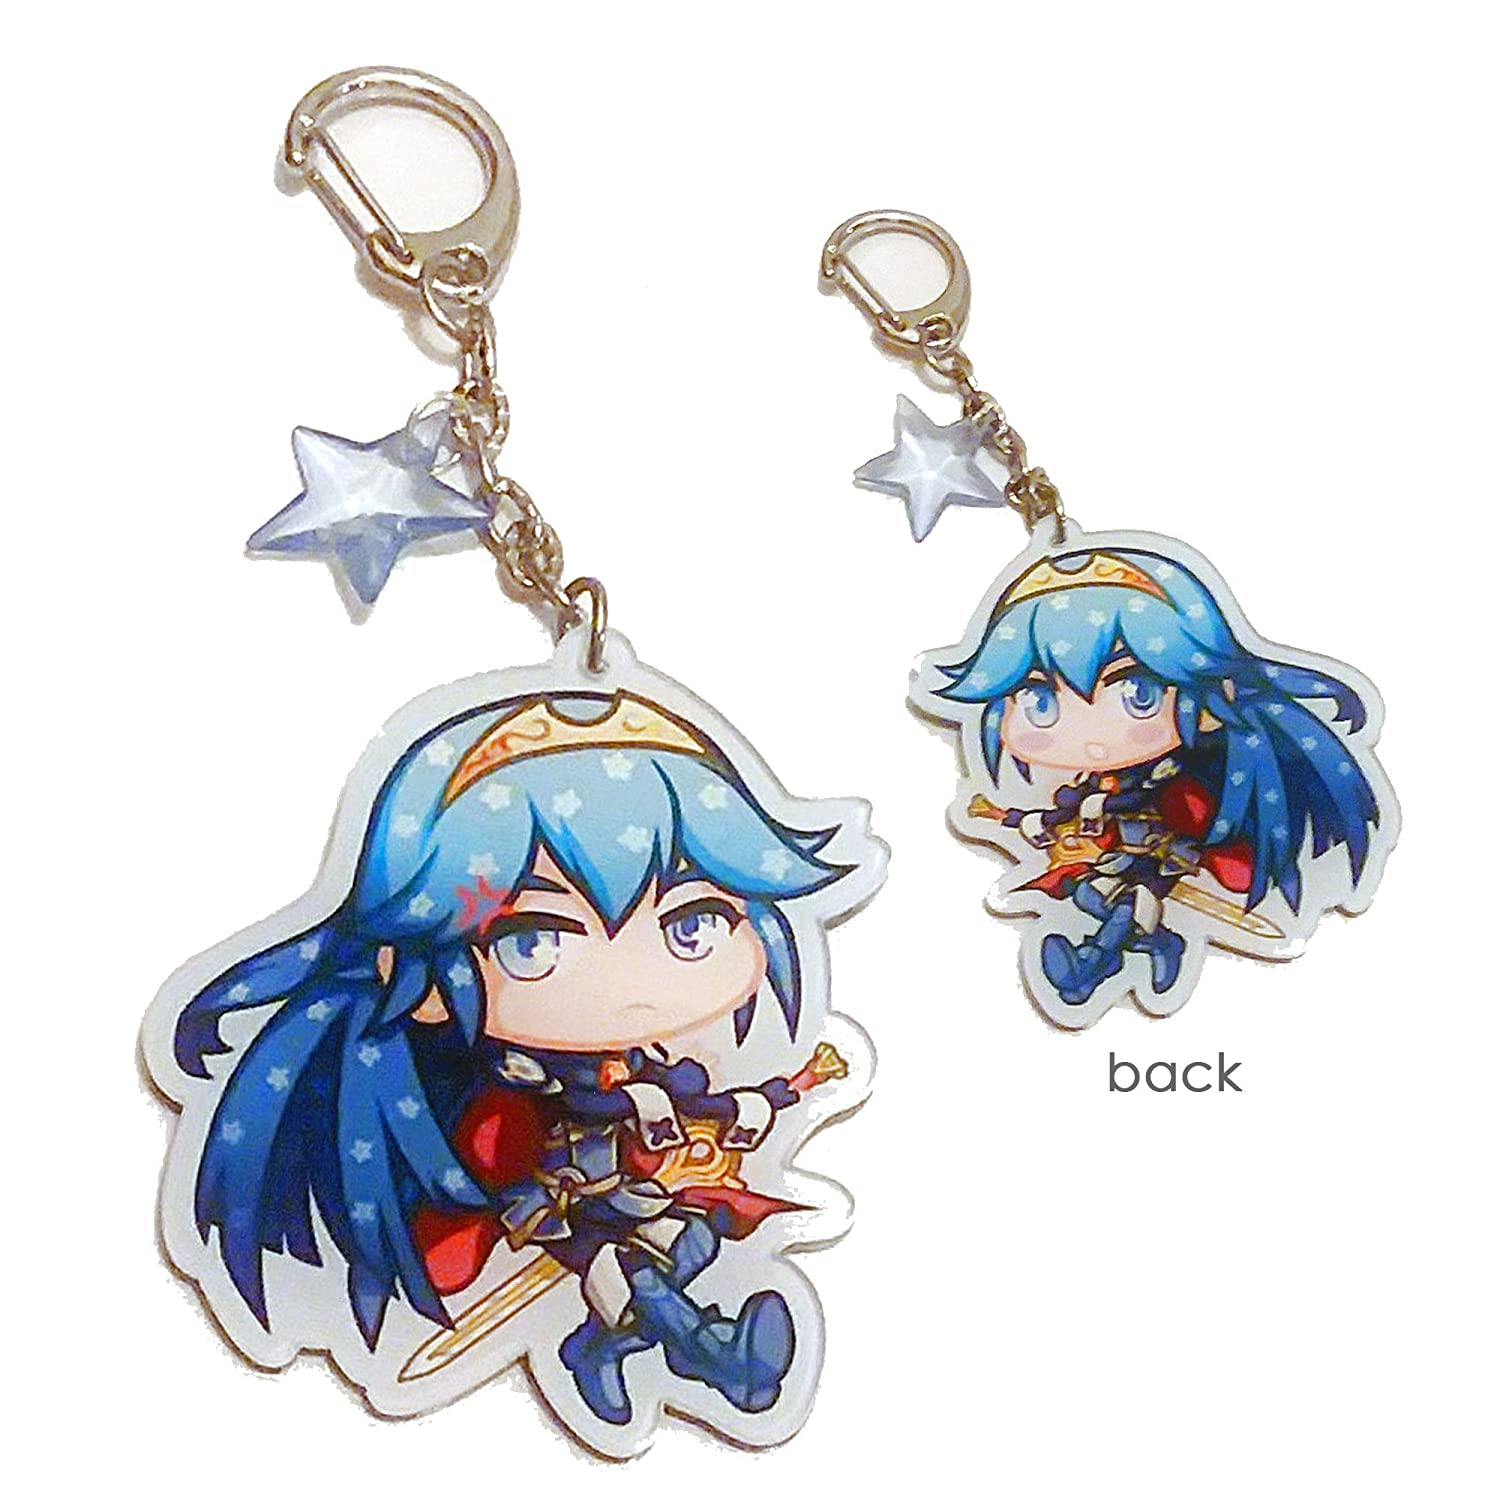 Amazoncom Lucina Fire Emblem Keychain Office Products